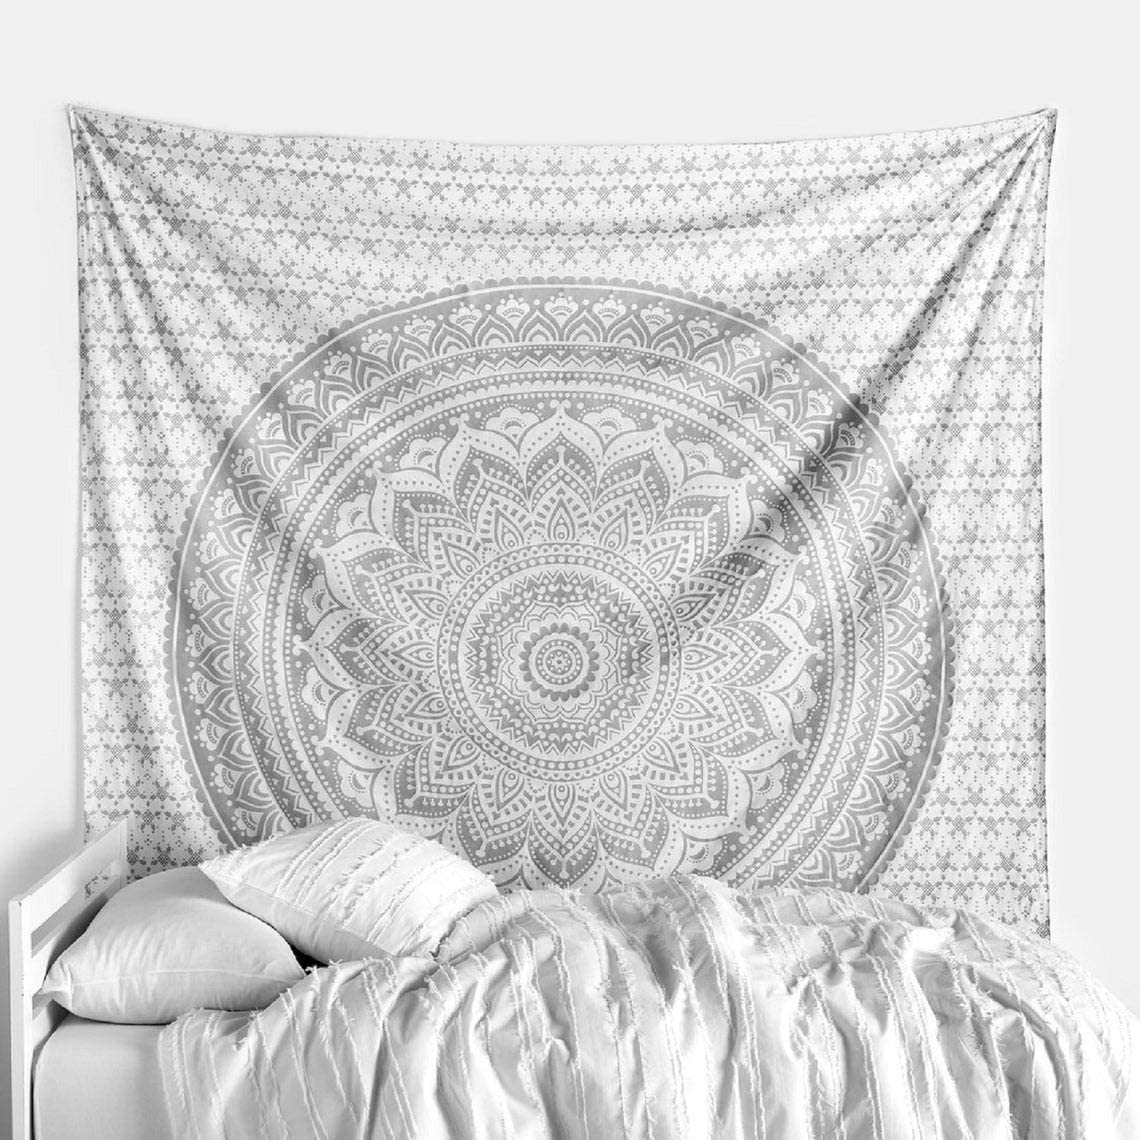 THE ART BOX Mandala Hippie Wall Hangings Psychedelic Tapestries Indian Cotton Bedspread Picnic Sheet Wall Decor Blanket Wall Art Boho Trippy Tapastry